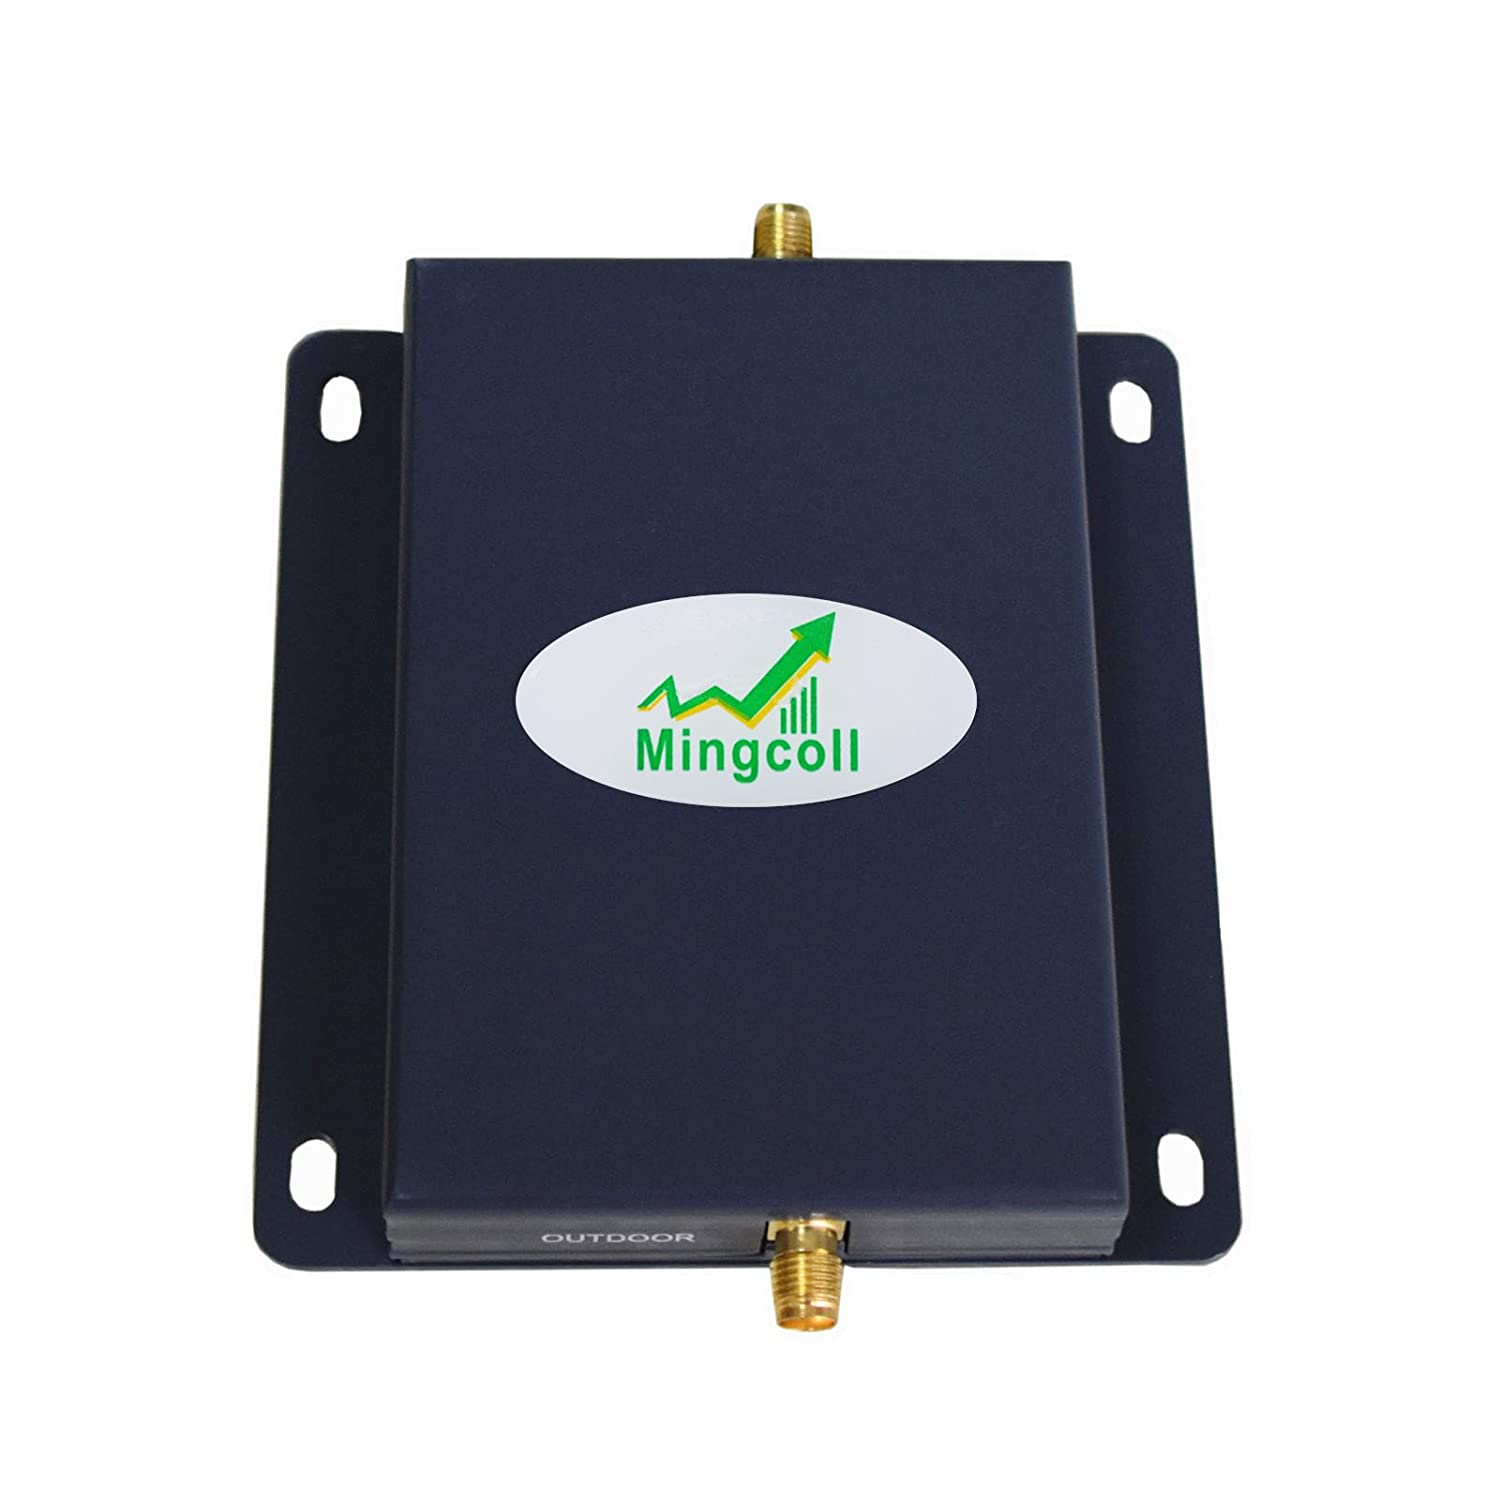 Amazon.com: ATT T-Mobile Cell Mobile Phone Signal Booster Mingcoll Home 4G LTE Cell Booster 700MHz Band 12/17 Cellphone FDD Signal Amplifier Repeater Kit ...